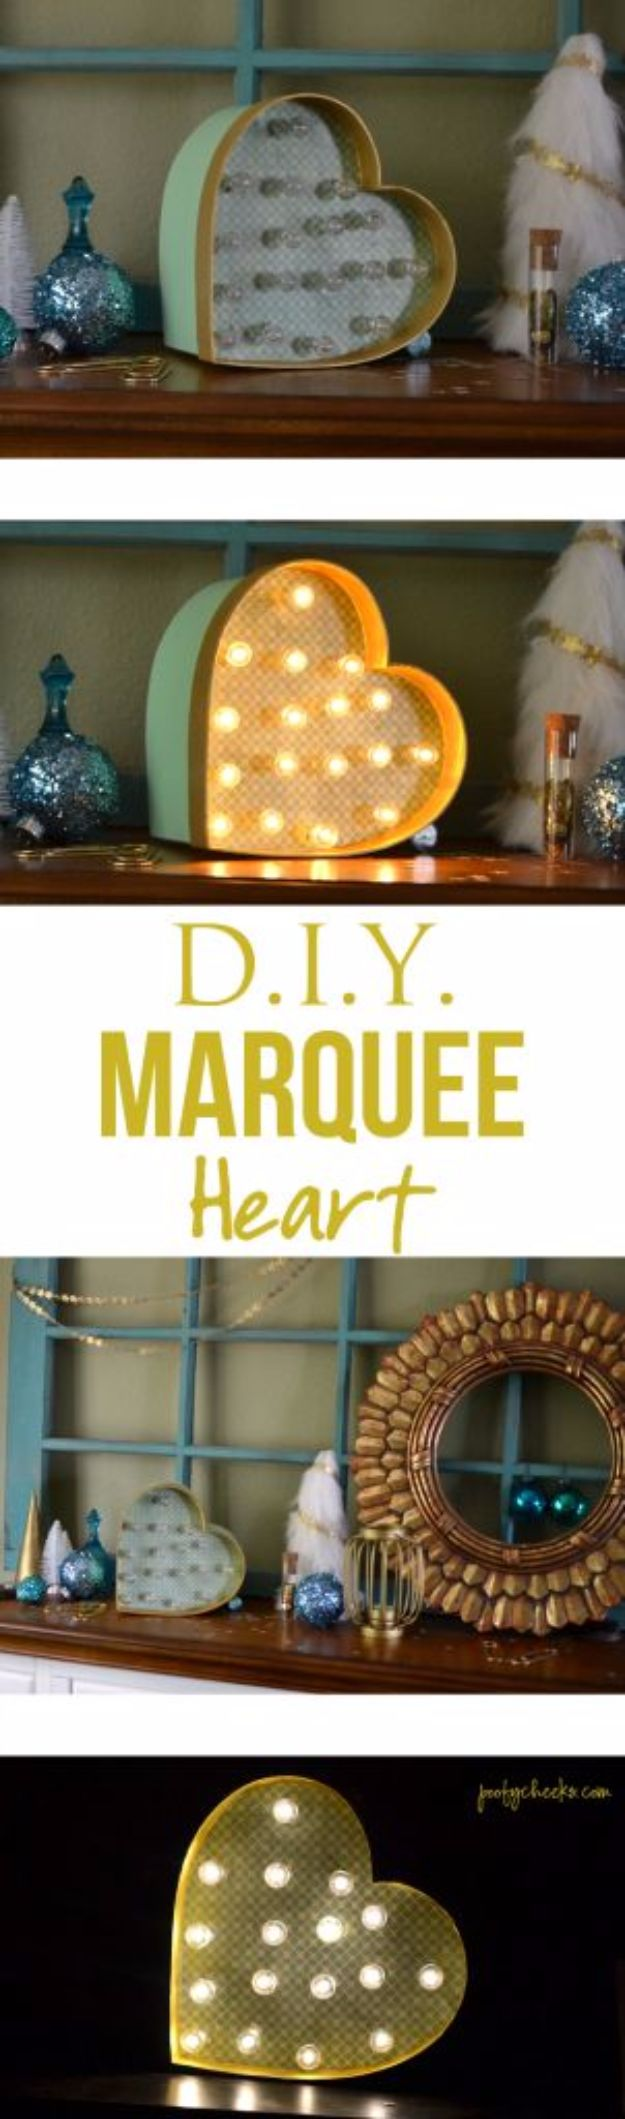 Best DIY Room Decor Ideas for Teens and Teenagers - DIY Heart Marquee Light - Best Cool Crafts, Bedroom Accessories, Lighting, Wall Art, Creative Arts and Crafts Projects, Rugs, Pillows, Curtains, Lamps and Lights - Easy and Cheap Do It Yourself Ideas for Teen Bedrooms and Play Rooms #teencrafts #diydecor #roomideas #teenrooms #teendecor #diyideas